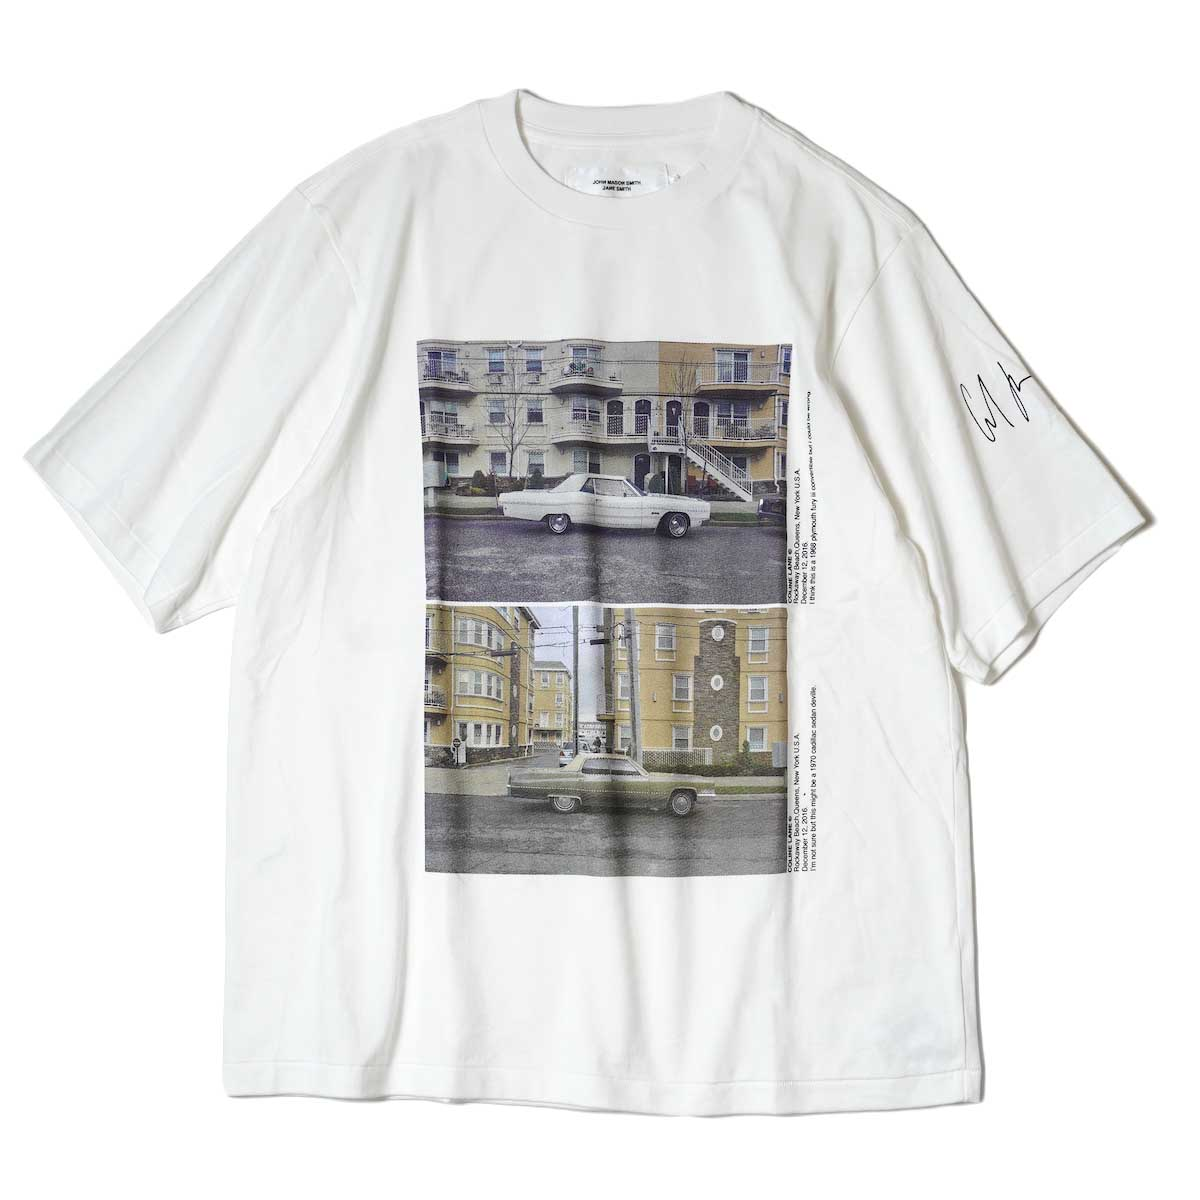 JANE SMITH / CADILLAC PLYMOUTH S/S T-Shirt (White)